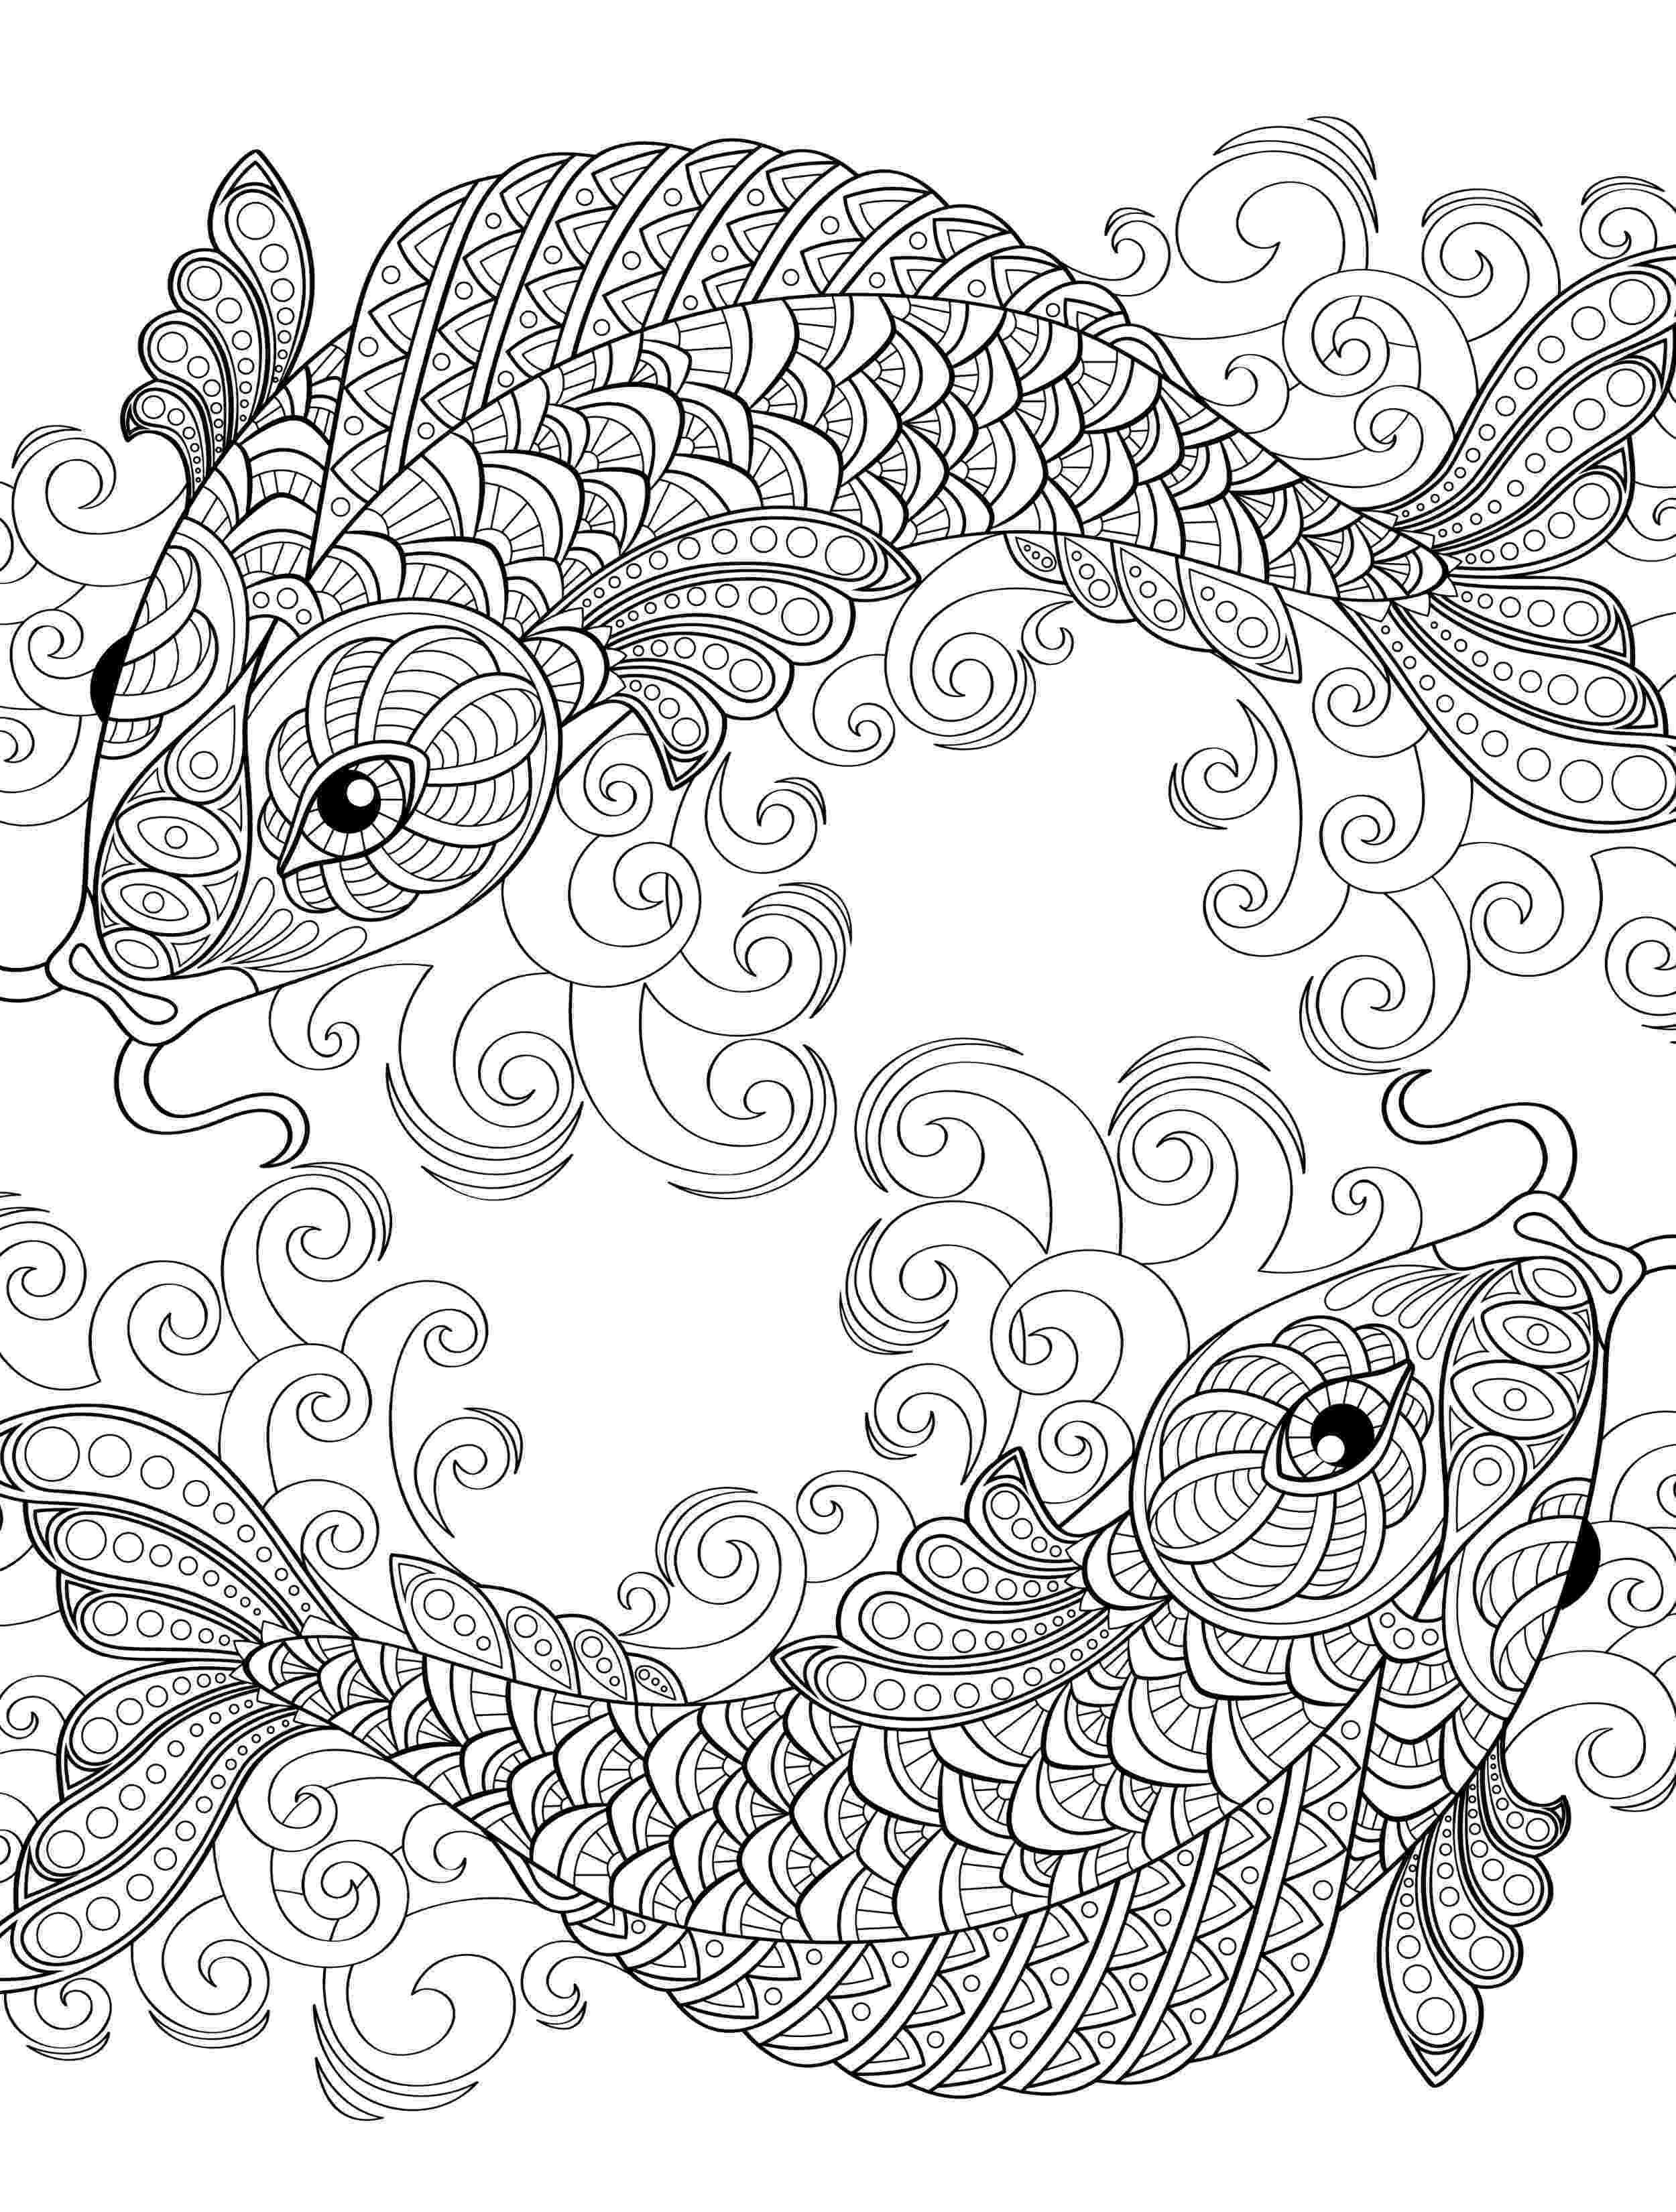 coloring pages for adults free online pin on coloring adults pages for free coloring online